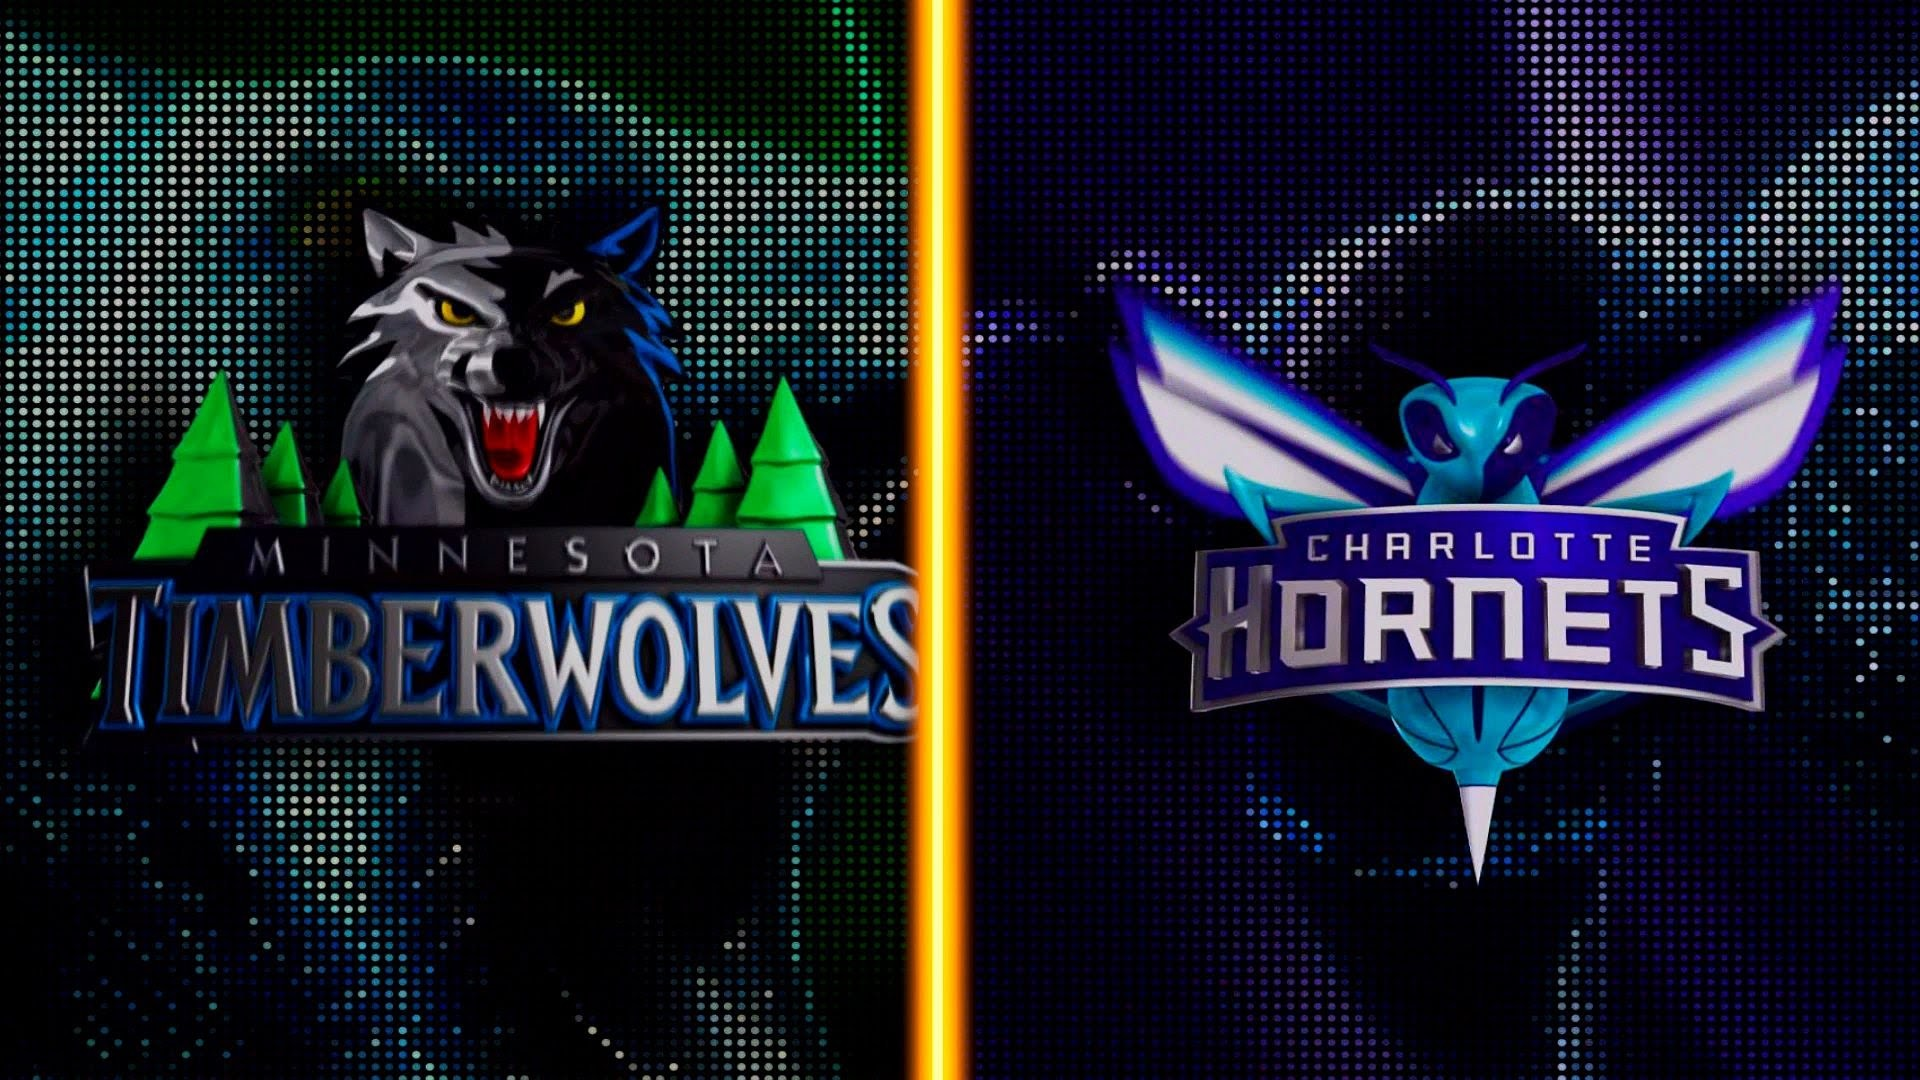 1920x1080 PS4: NBA 2K16 - Minnesota Timberwolves vs. Charlotte Hornets [1080p 60 FPS]  - YouTube